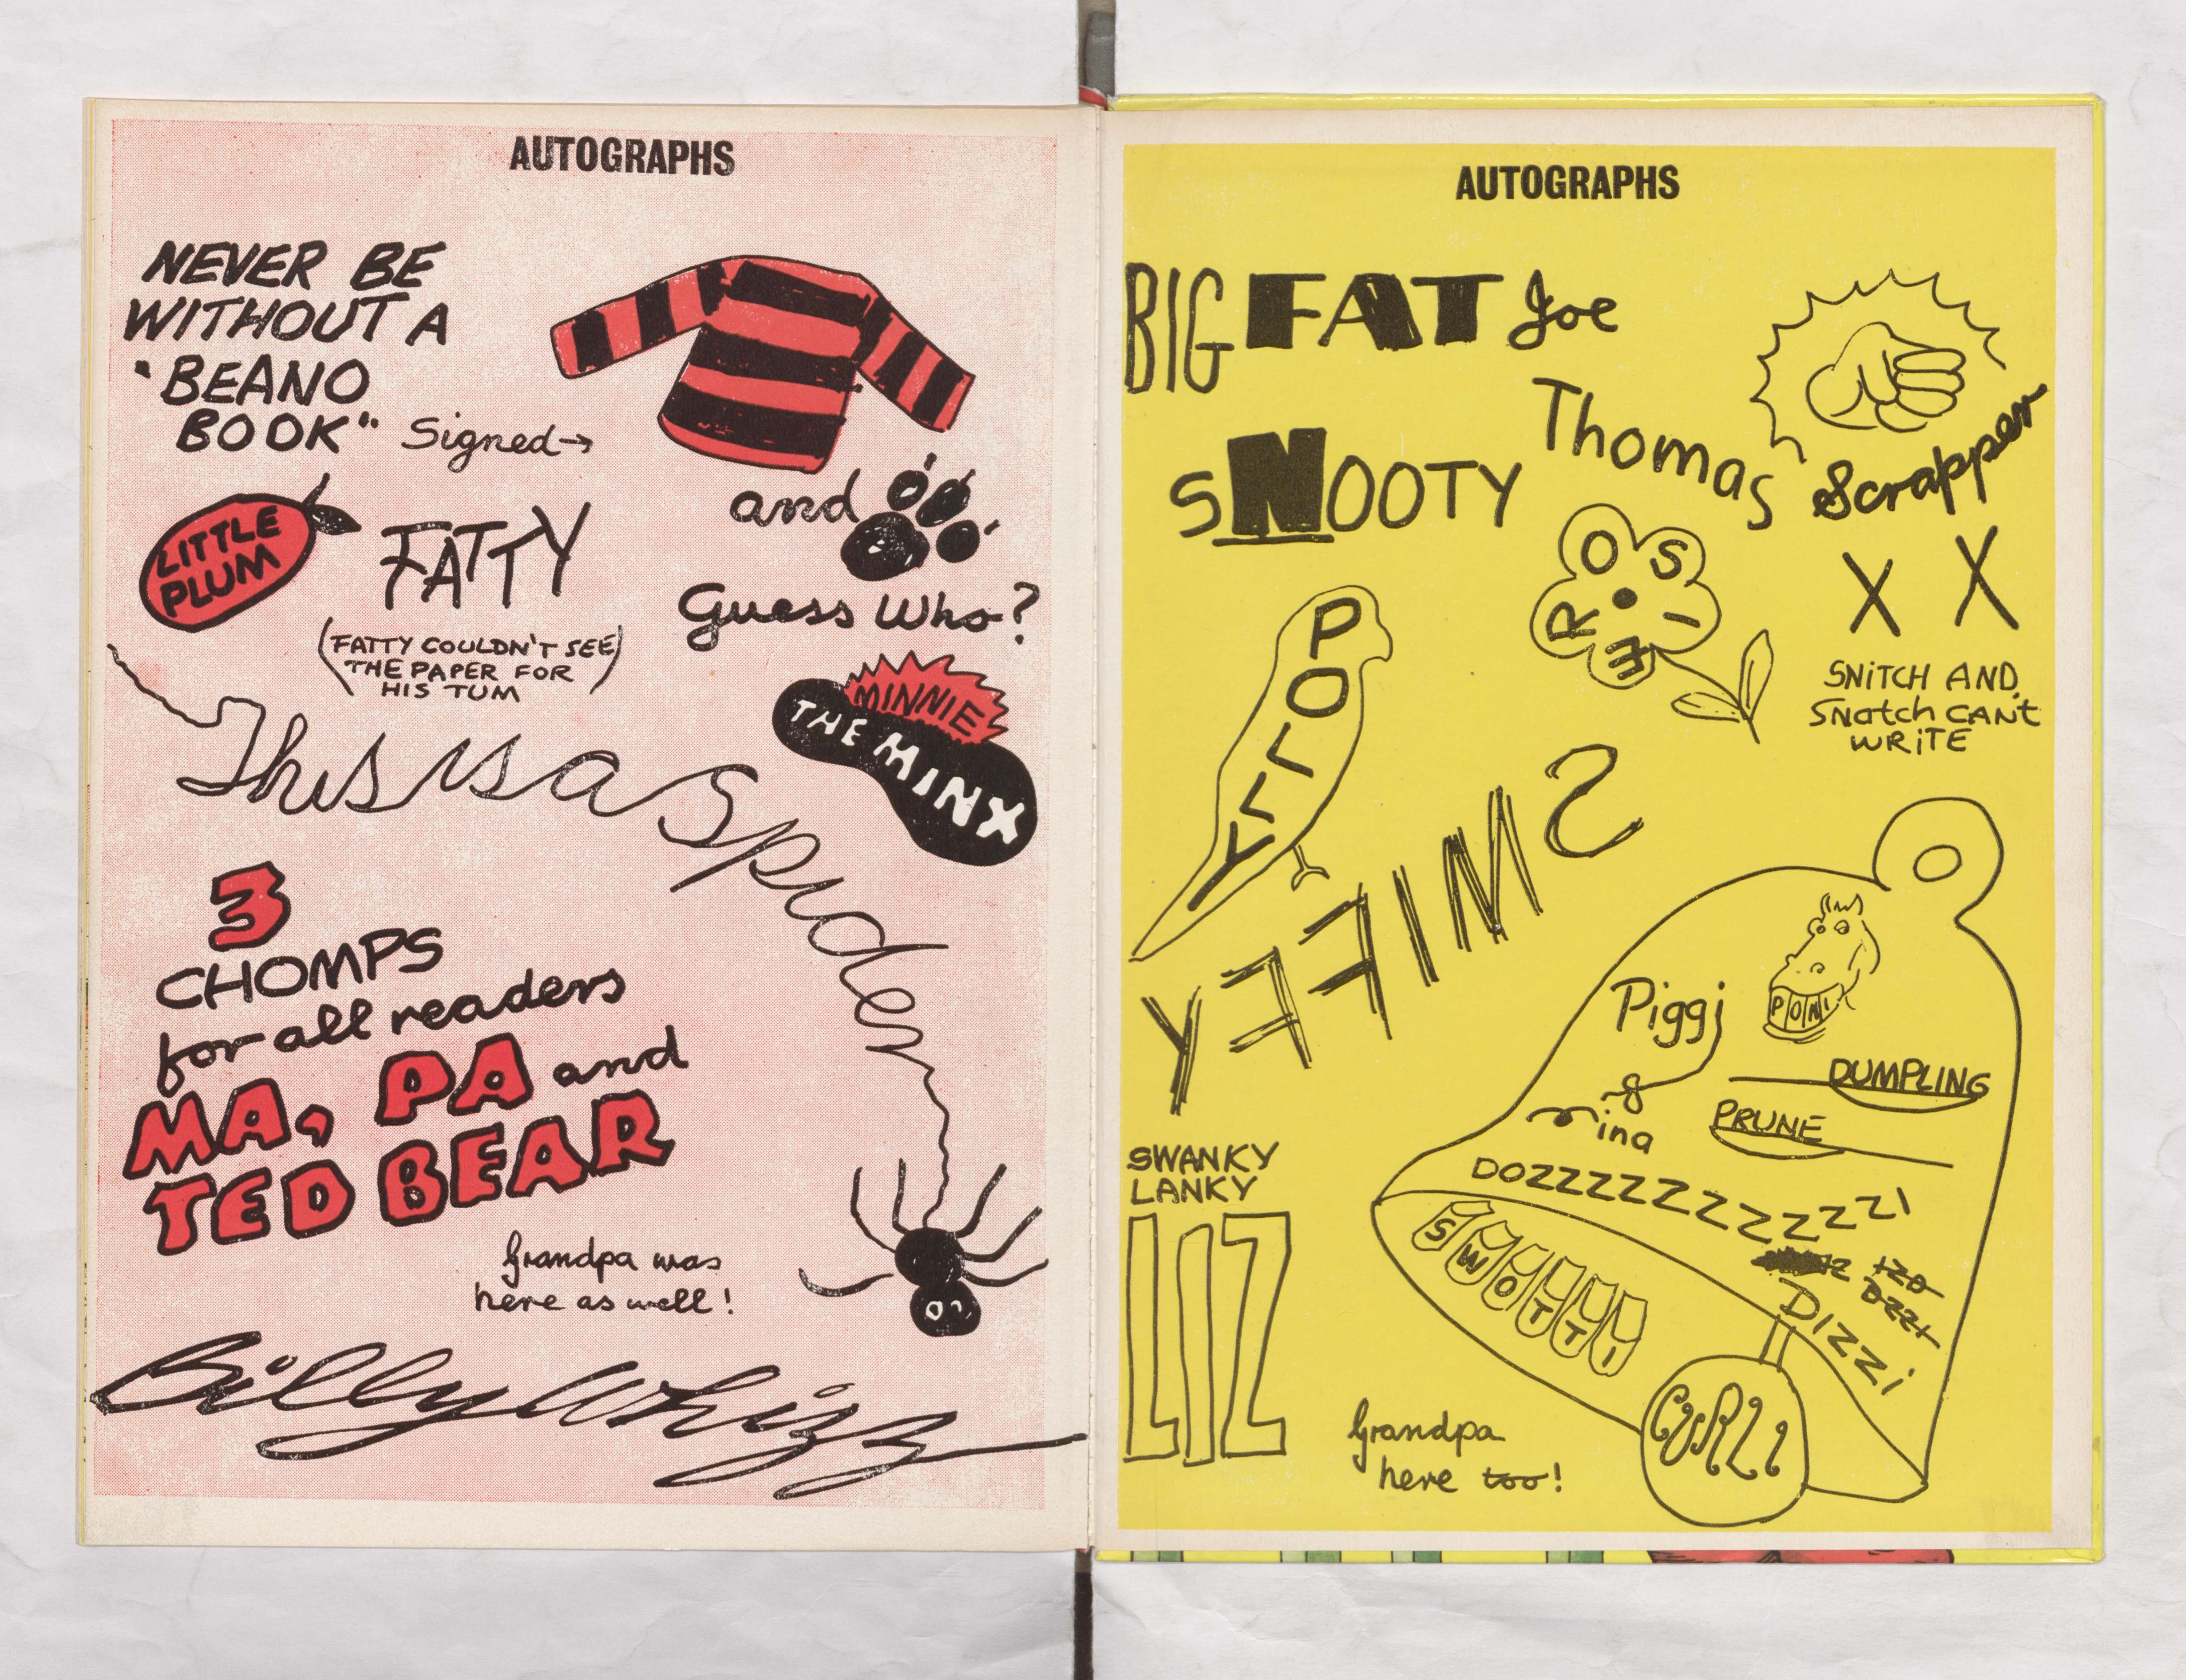 Beano Book 1973 Annual - Autographs 2